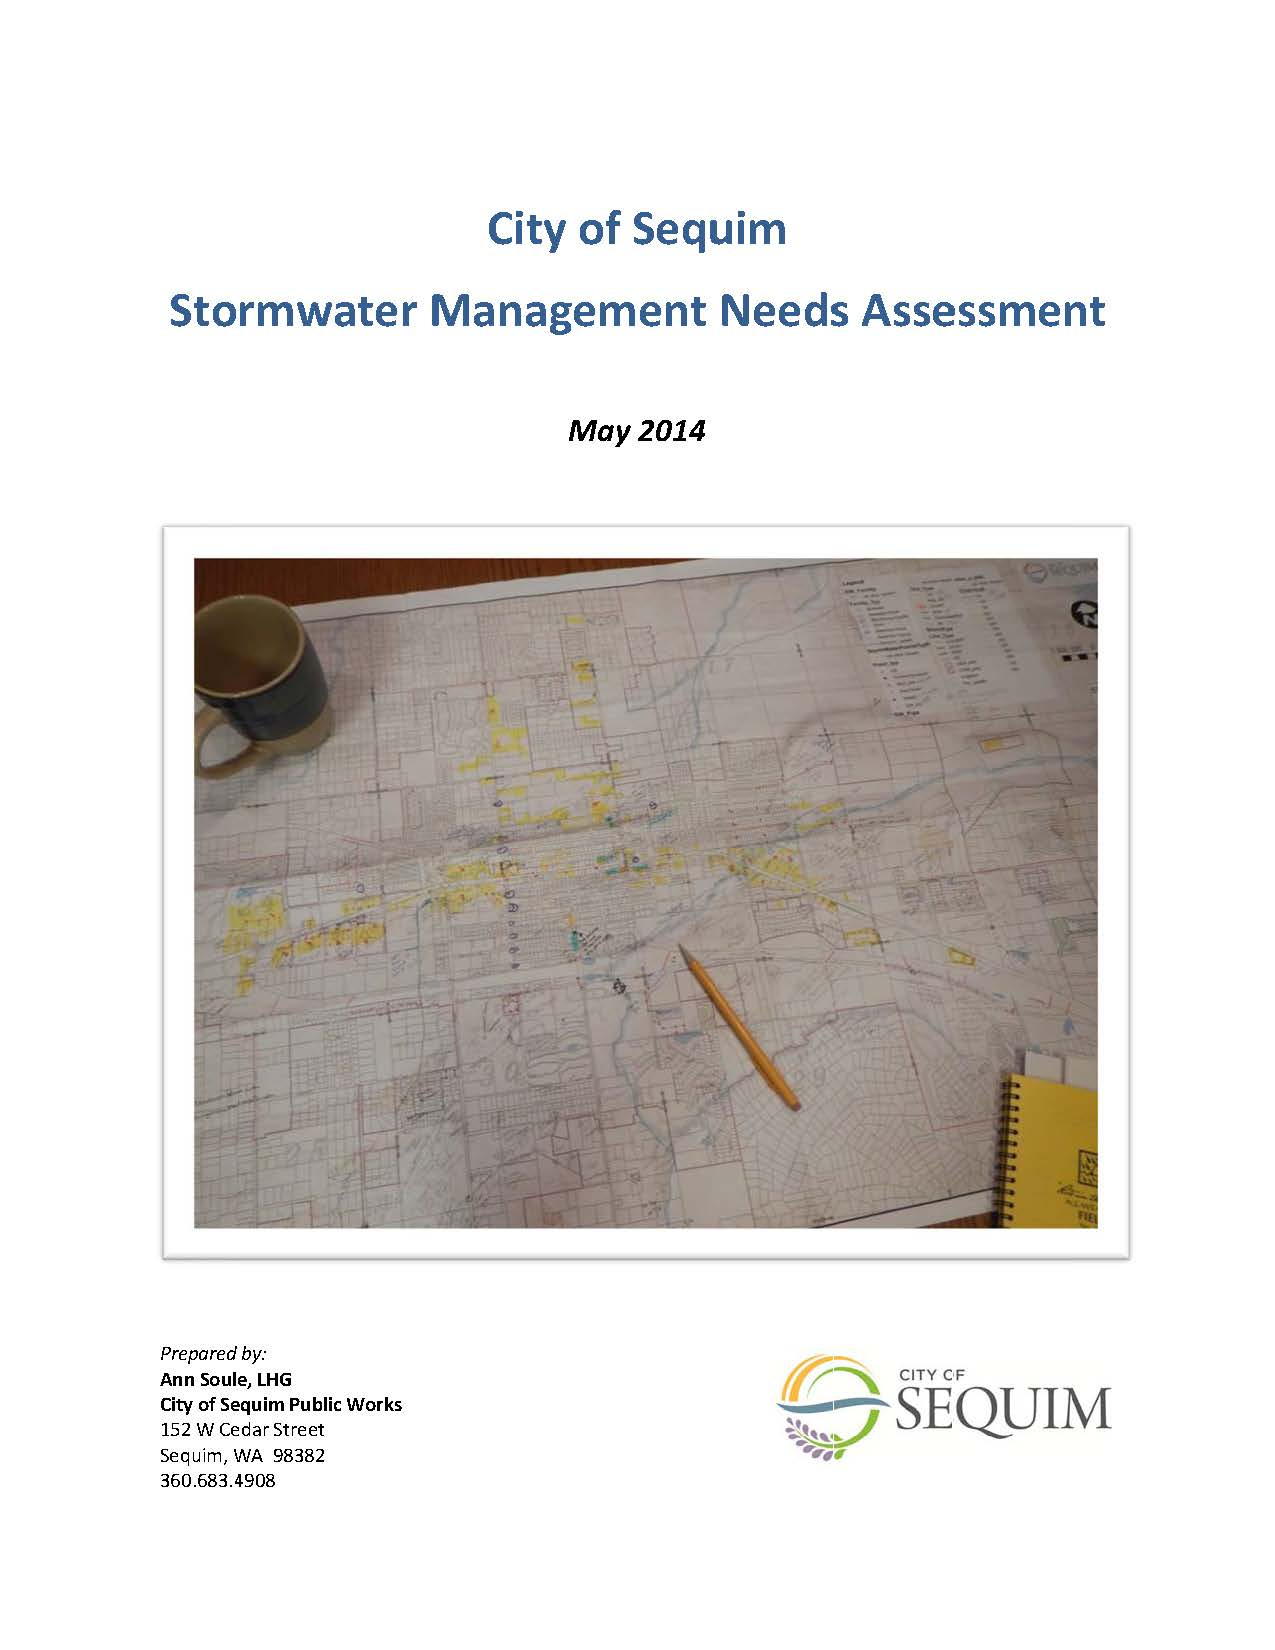 Stormwater Management Needs Assessment